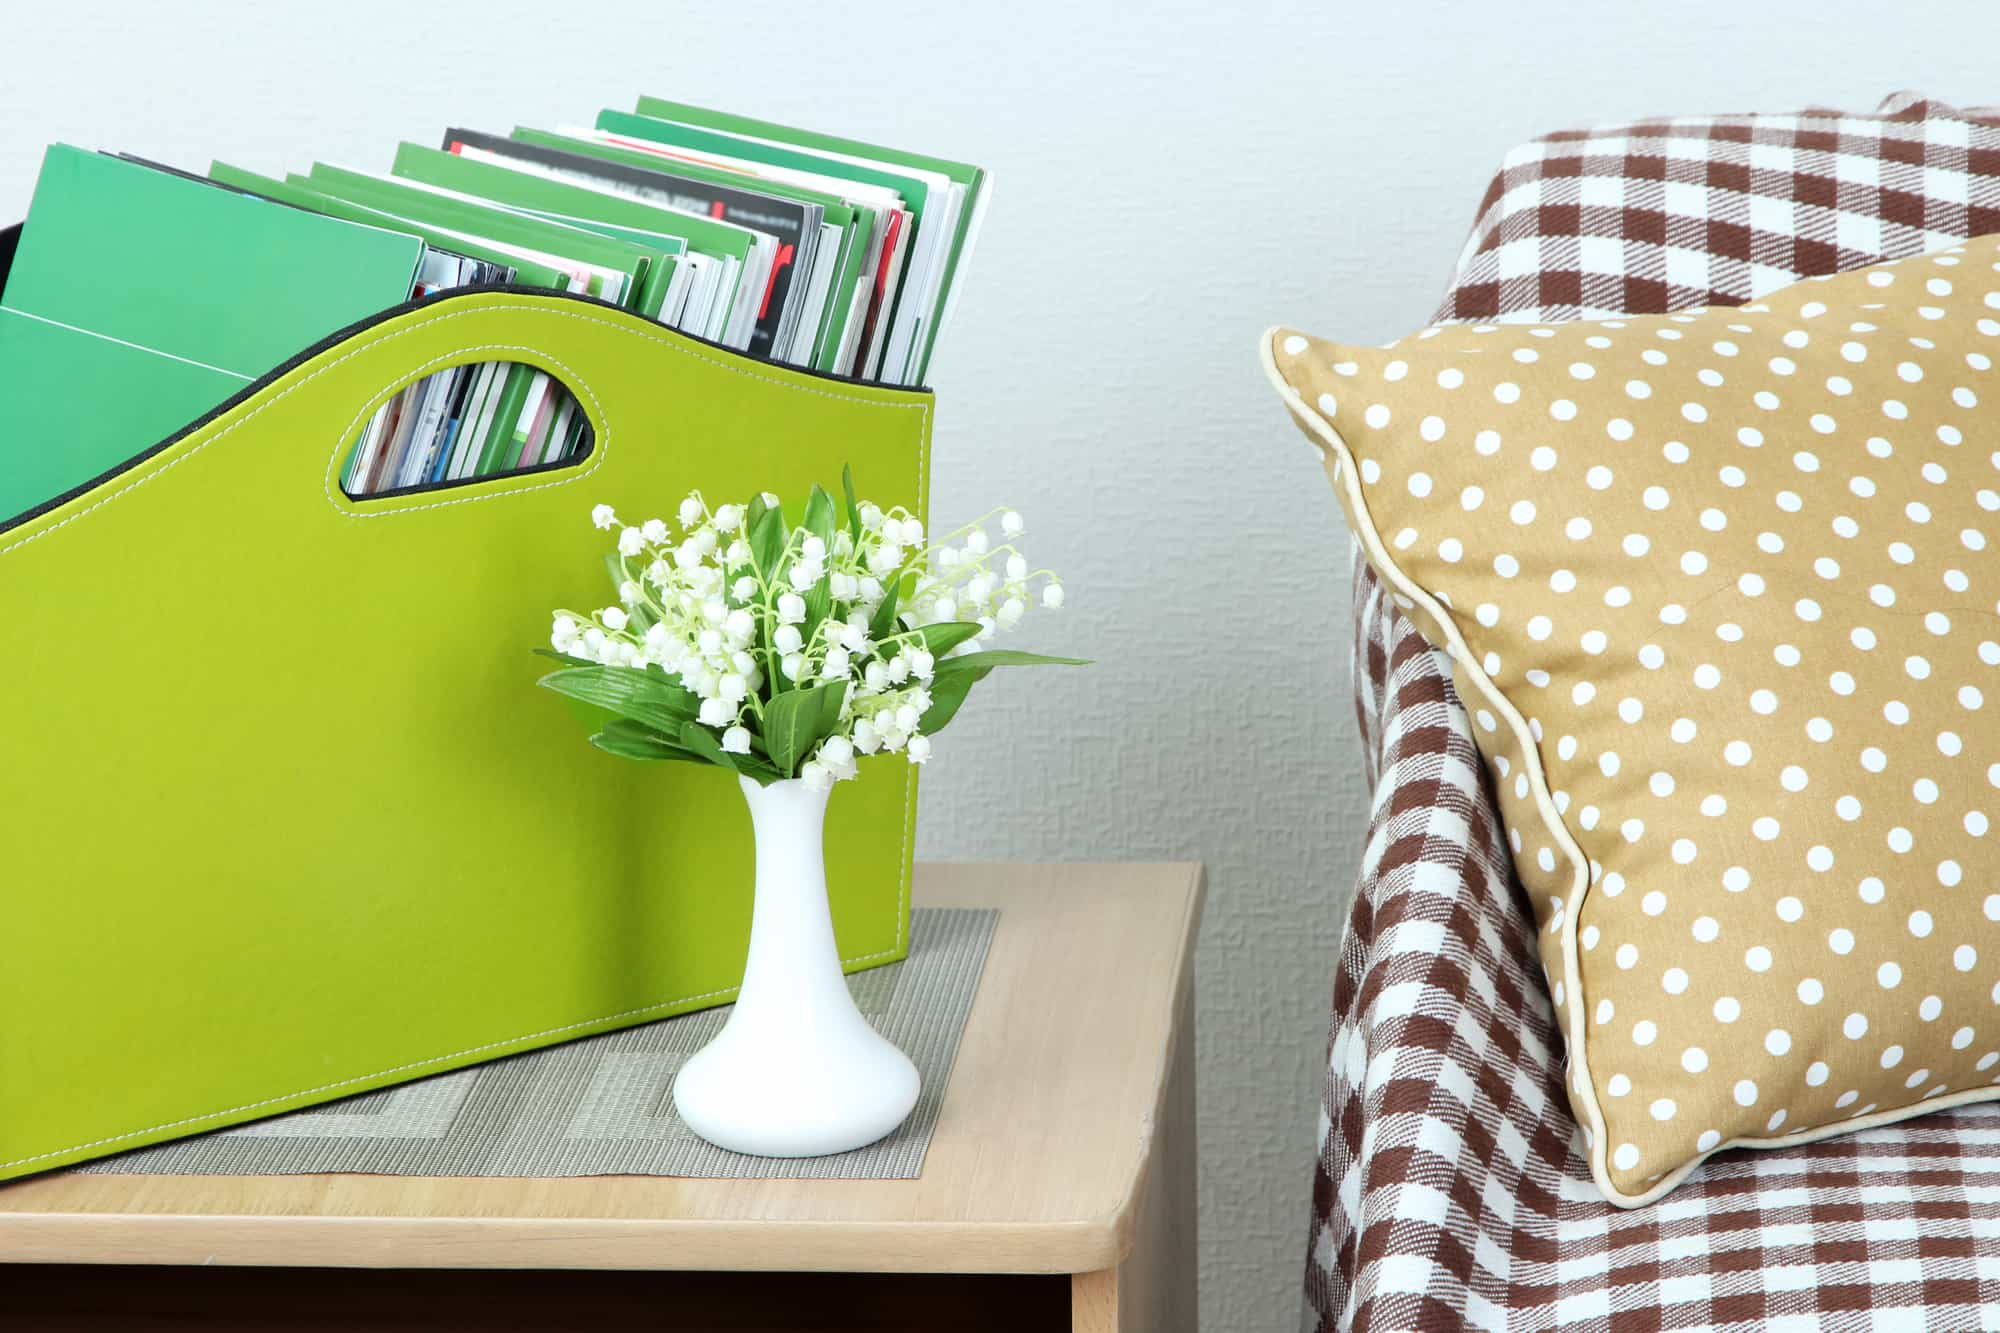 Magazines and folders in green box on bedside table in room